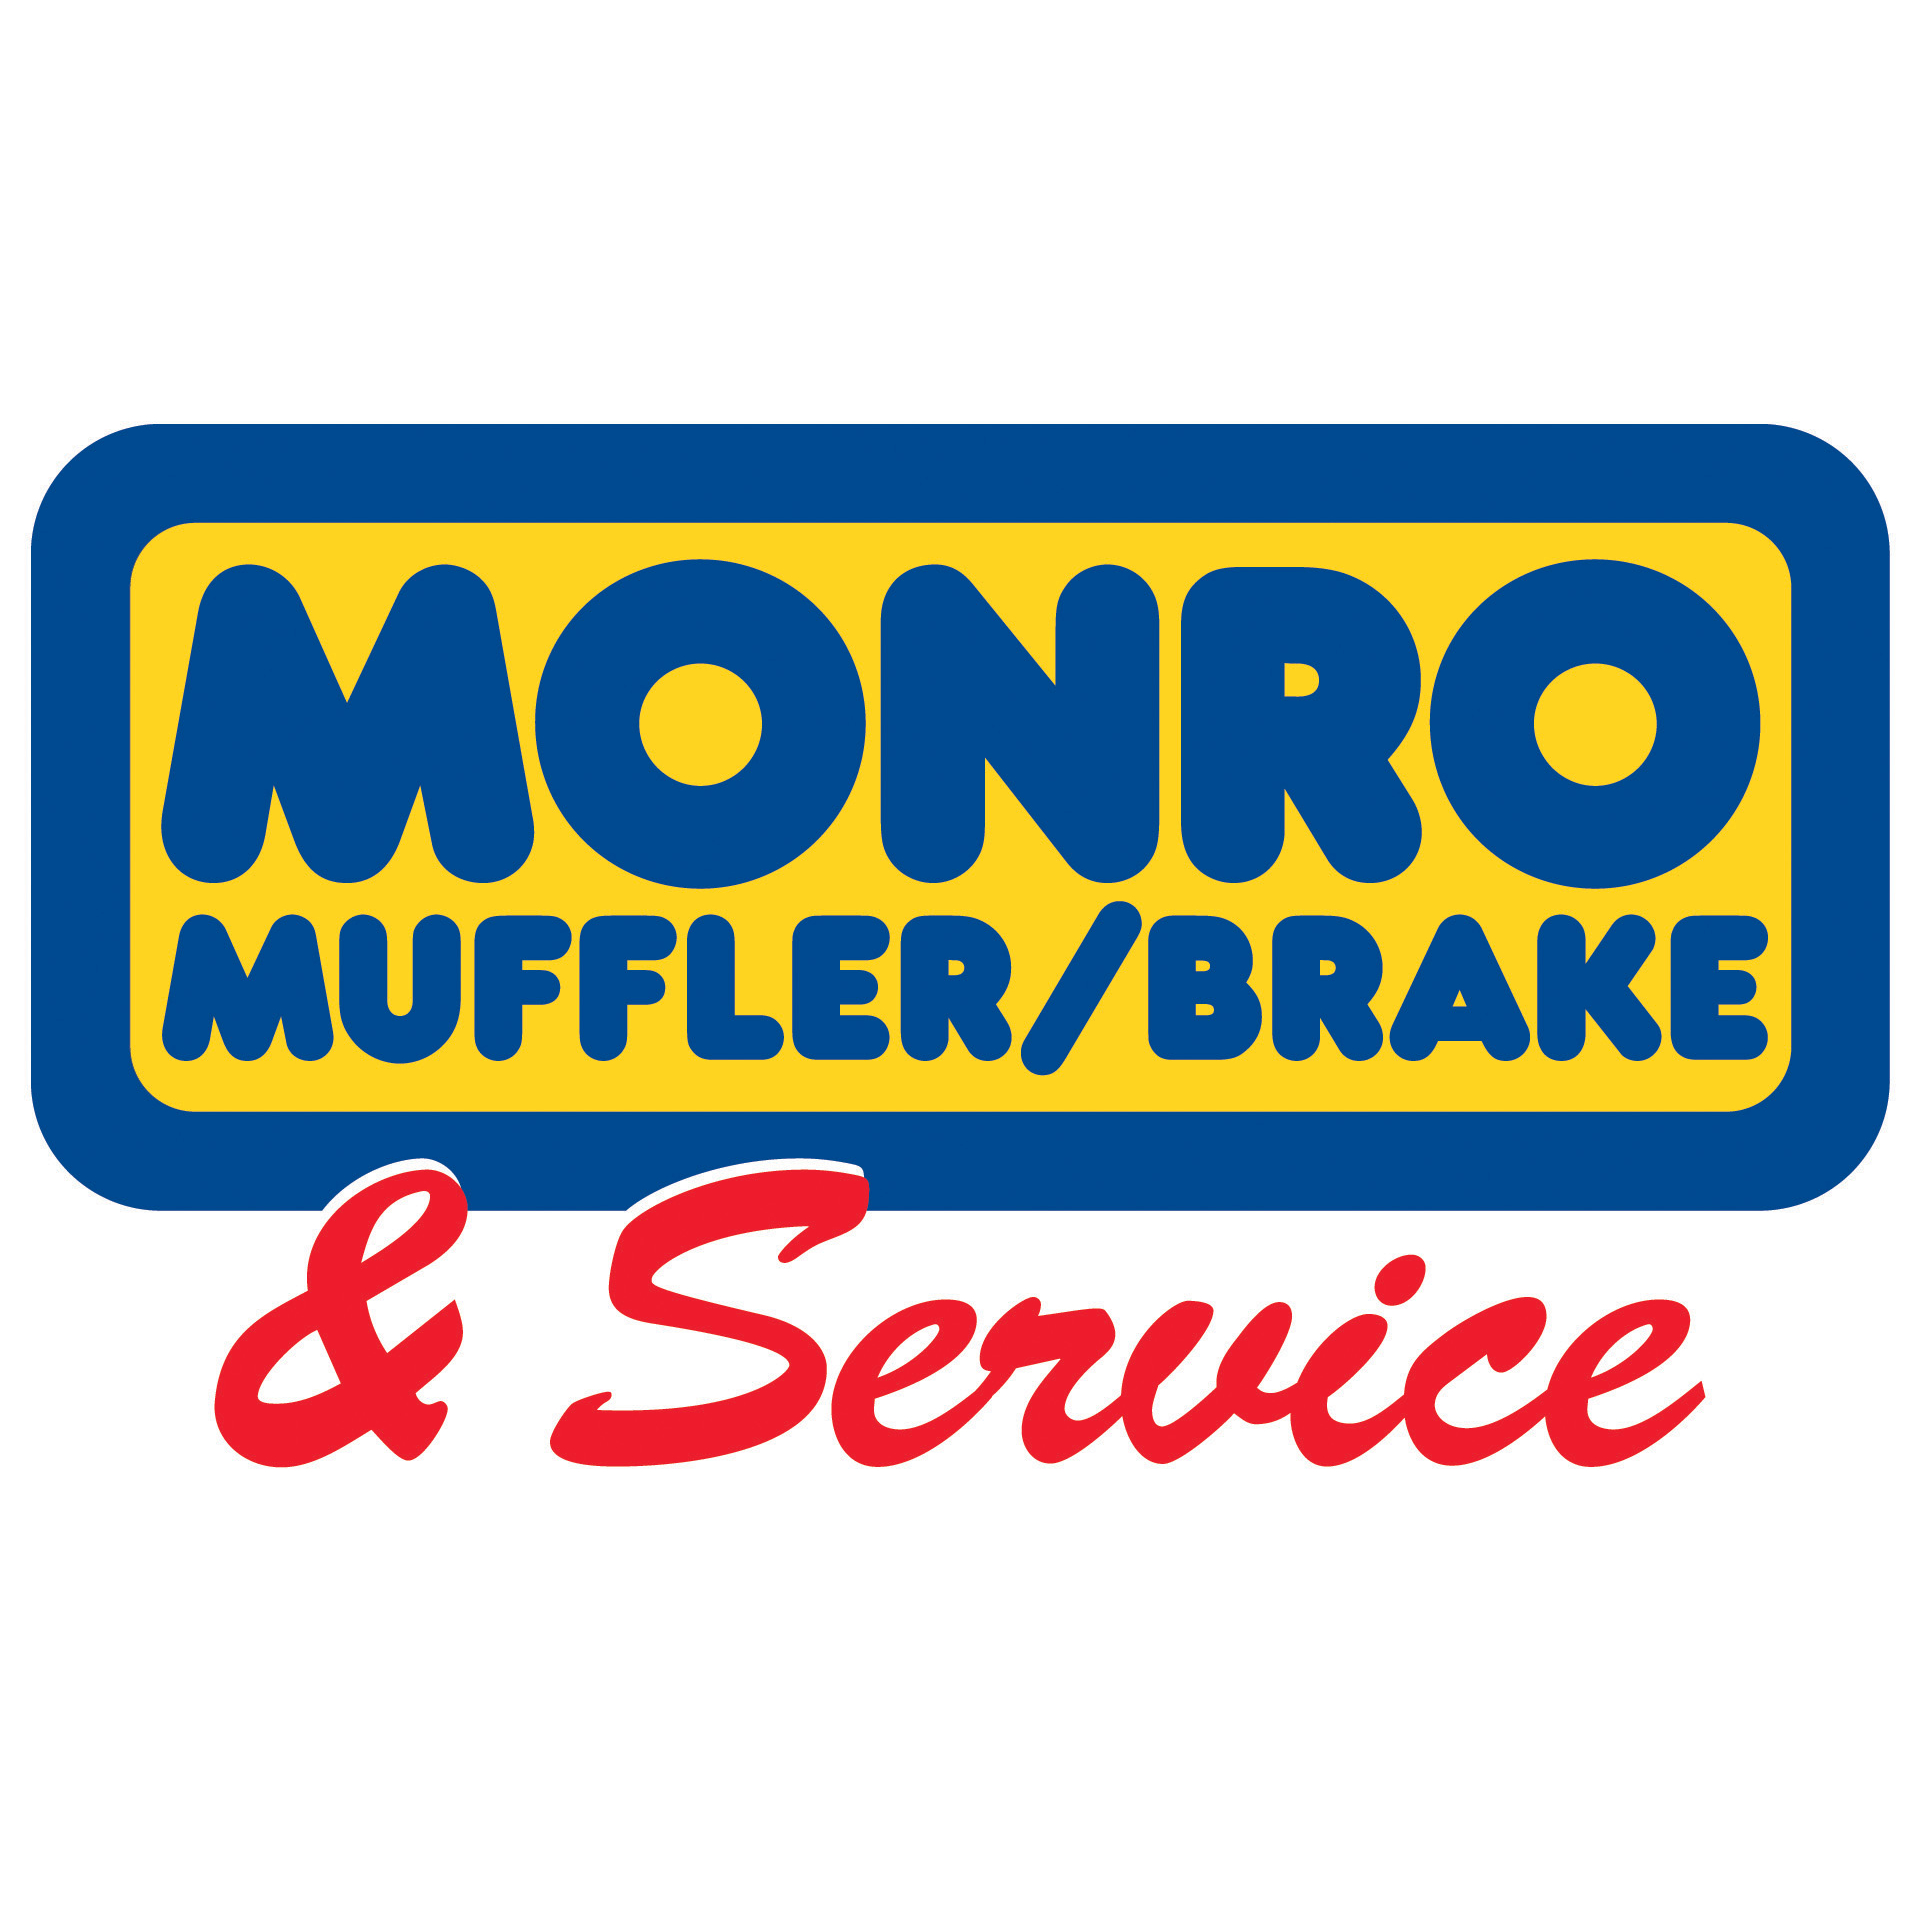 Monro Muffler Brake & Service - Roanoke, VA - General Auto Repair & Service